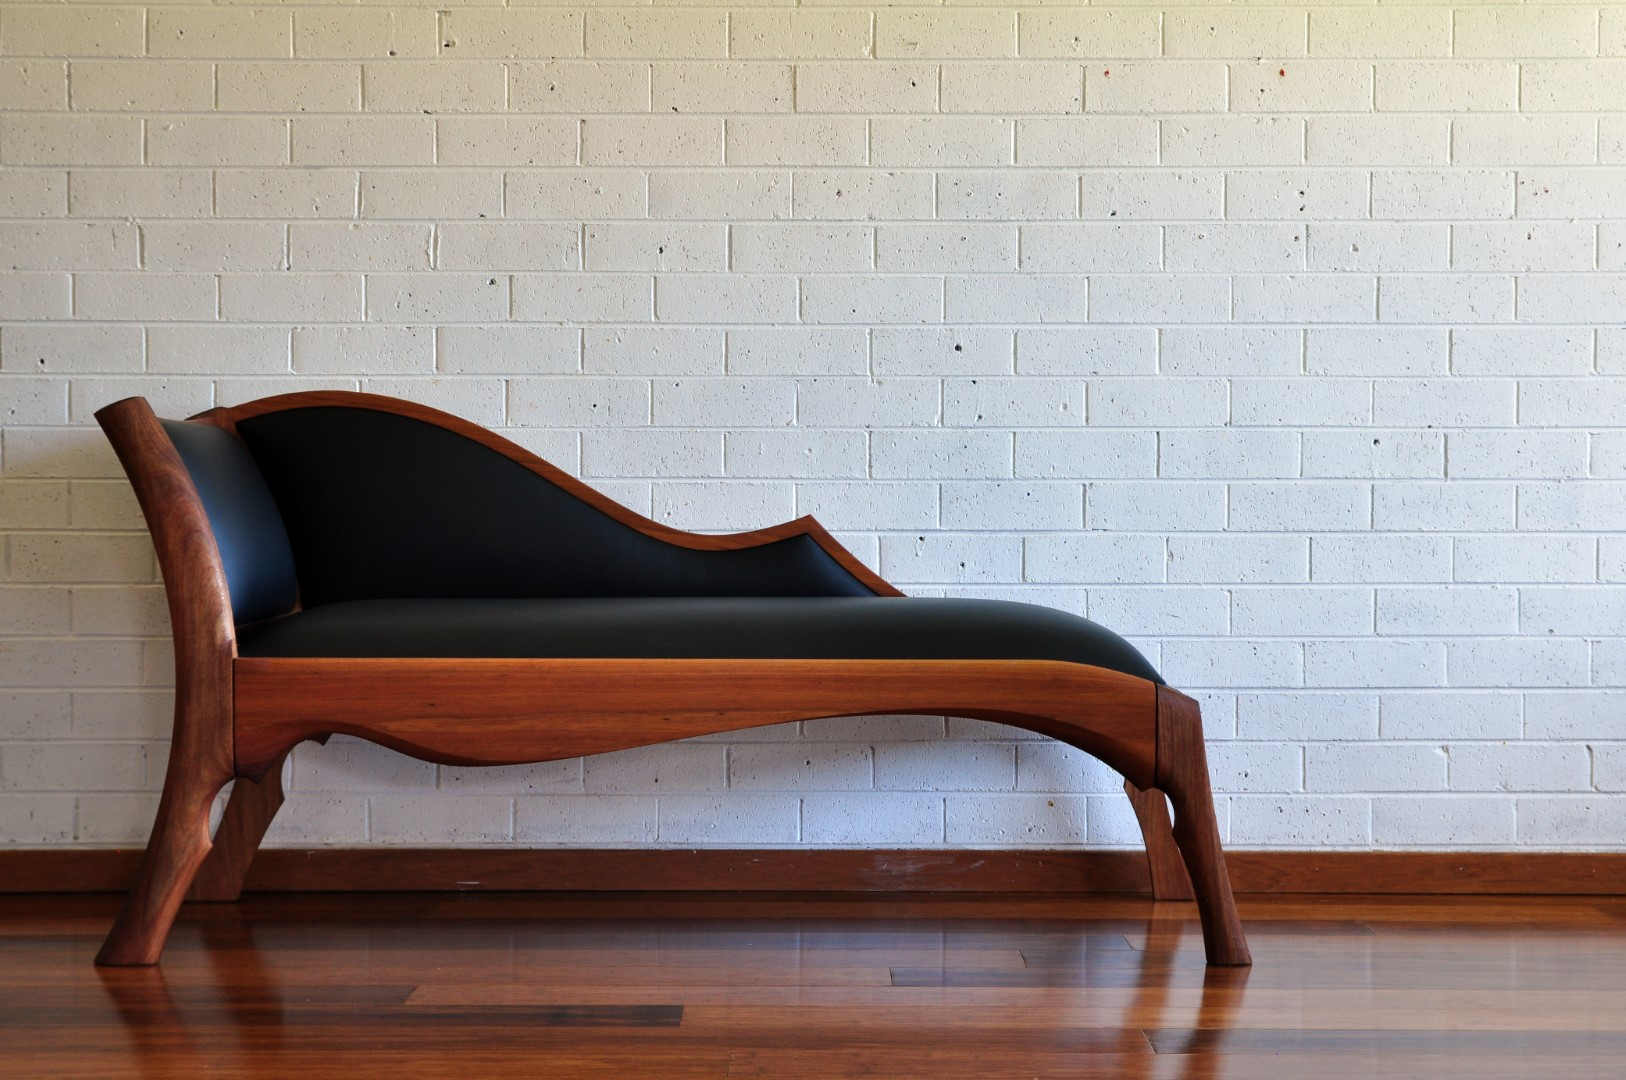 bespoke custom furniture chaise longue chair leather paul chilton